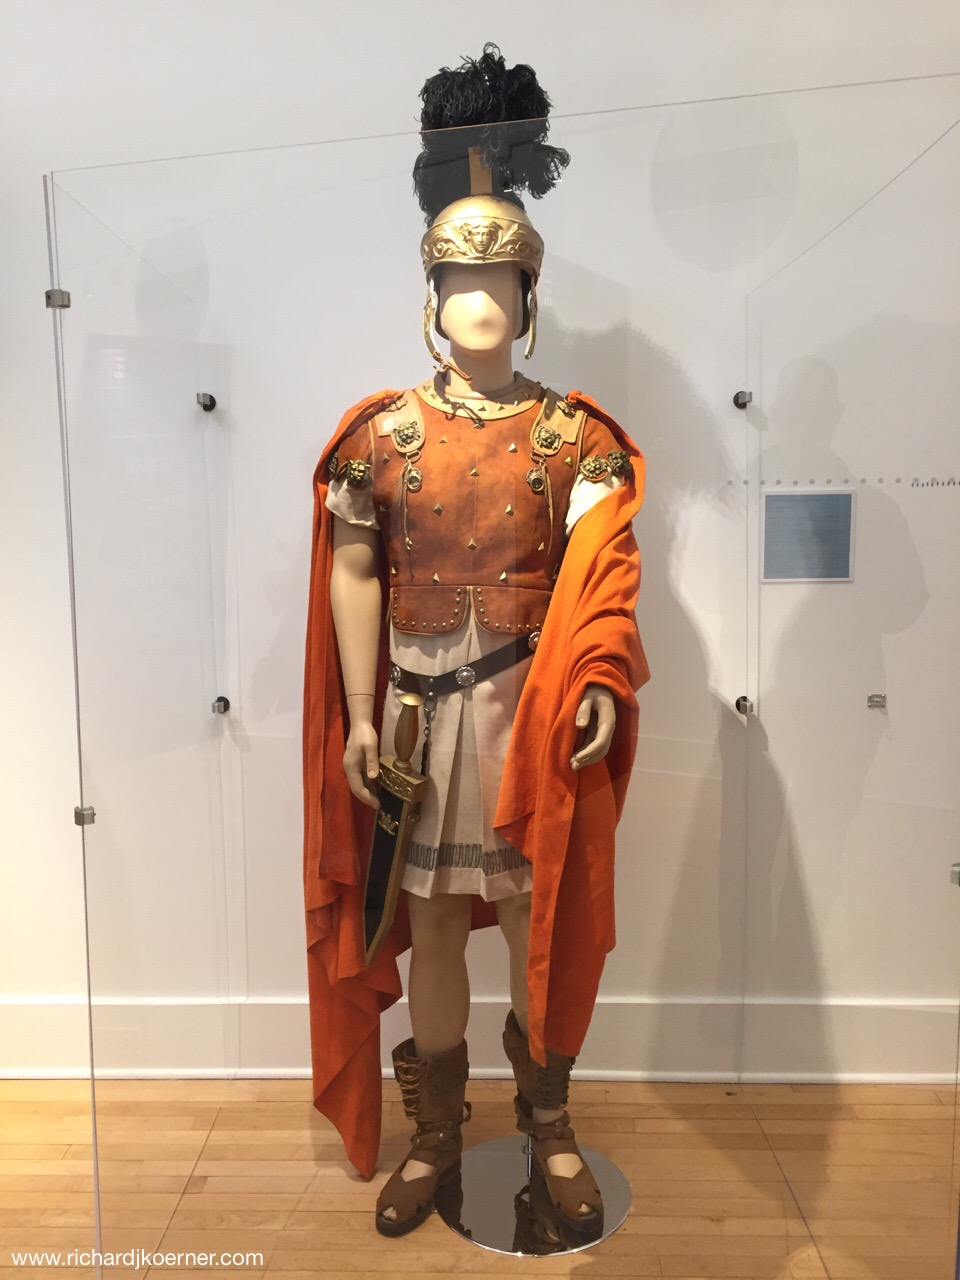 I don't know why I thought of this as a photo for 'unfriending' but this model of Marc Antony from the fim Julius Caesar, was worn by Marlon Brando.  Strangely enough, he went to school near the 'Folio' sighting and it happens to be the high school our daughter-in-law teaches at!